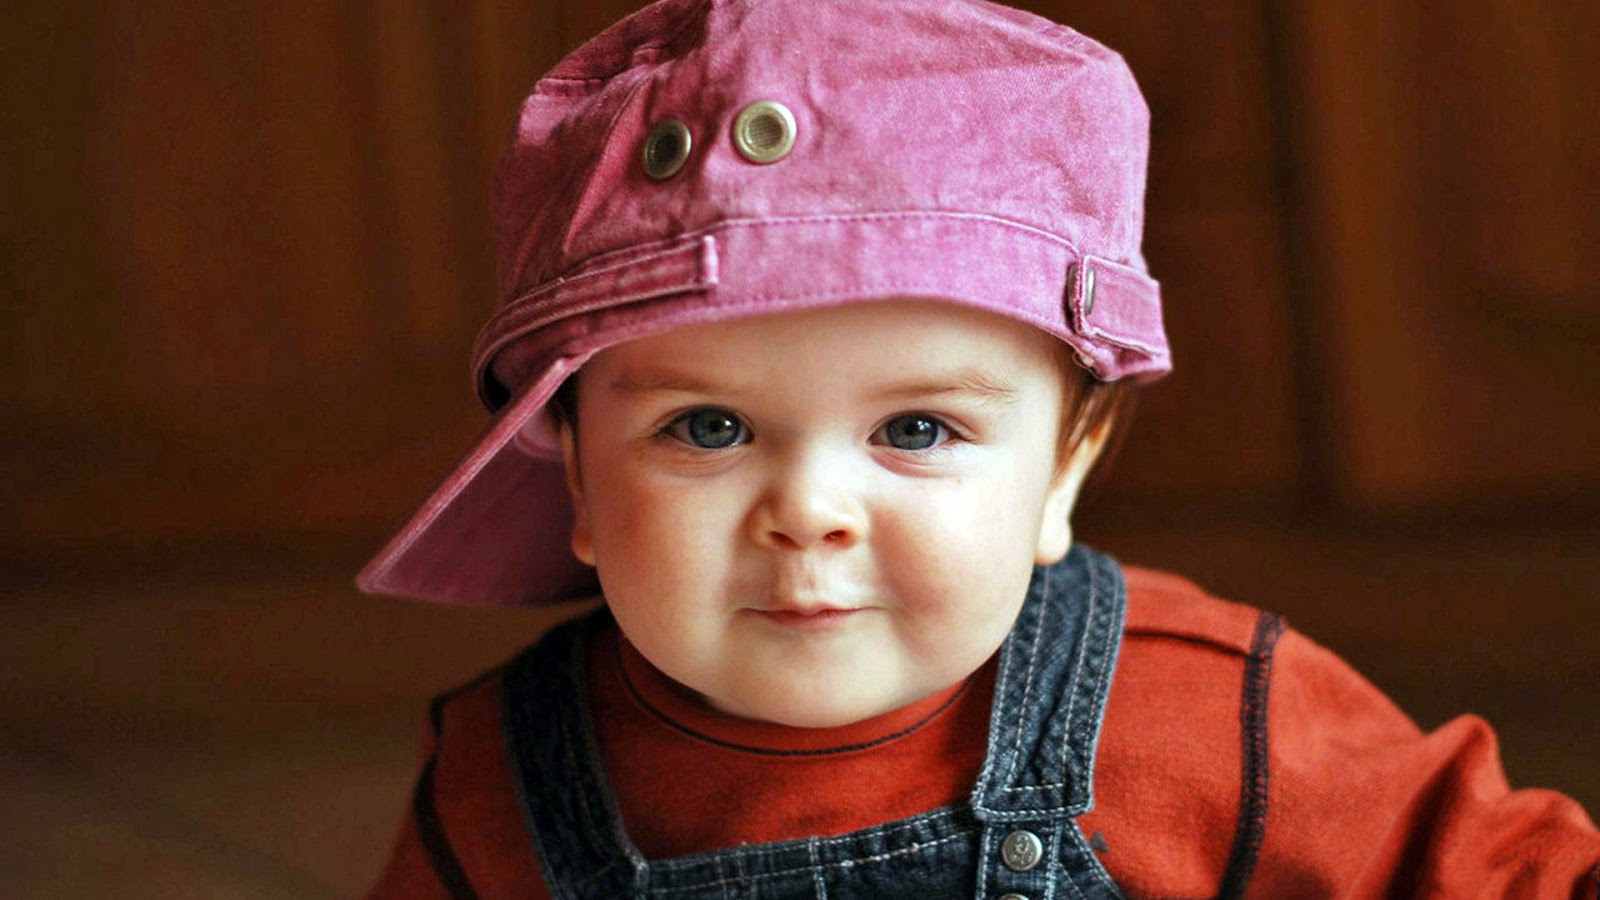 a hd wallpapers: baby photos download free|images of cute babies hd